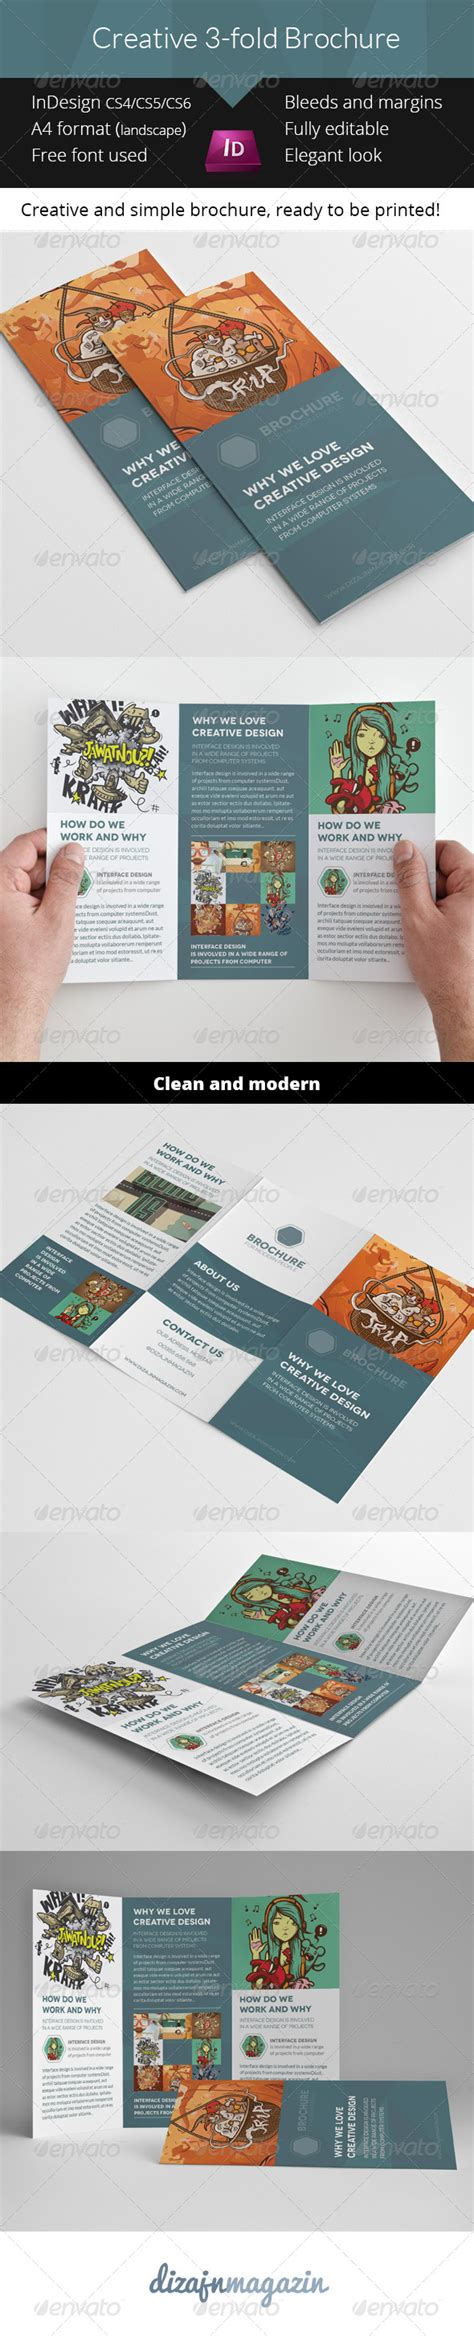 print template graphicriver creative 3 fold brochure